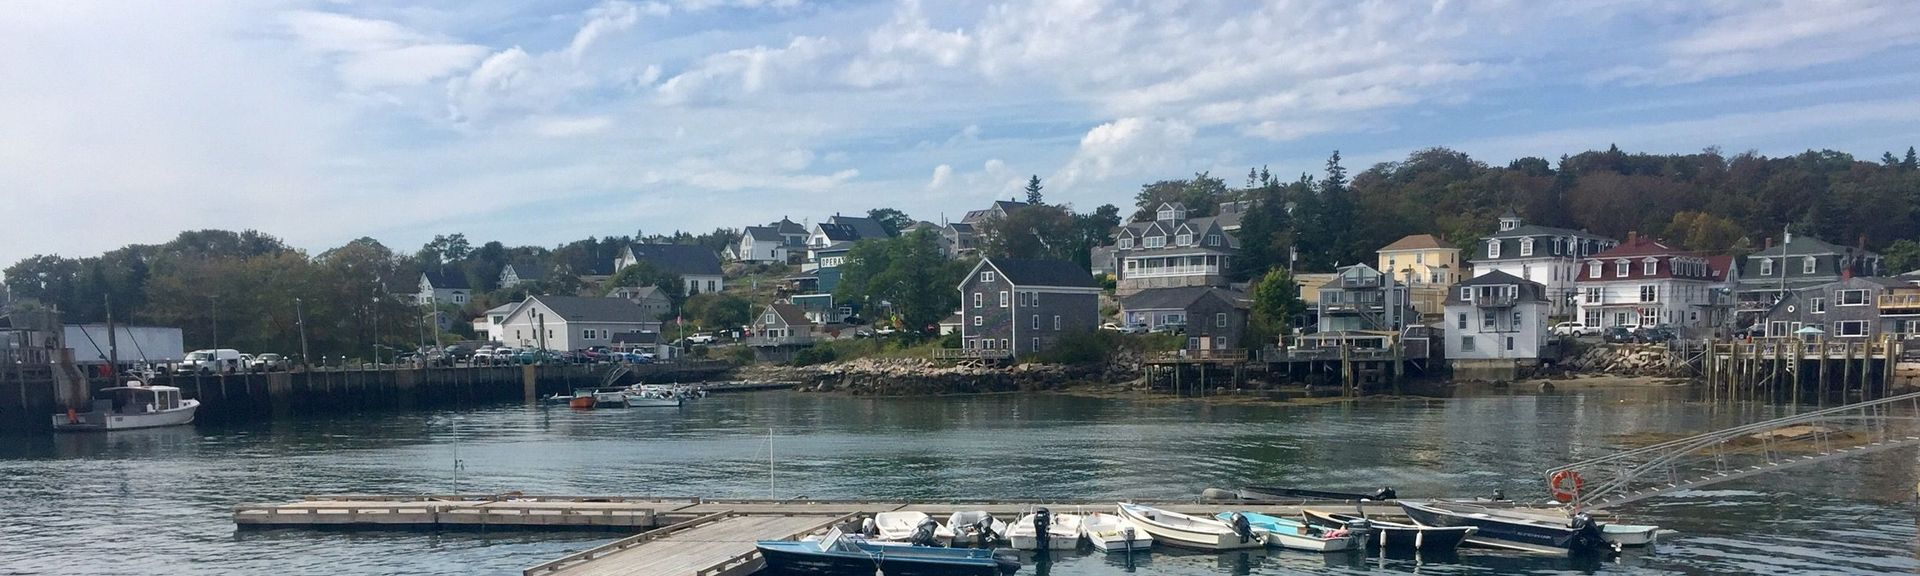 Stonington, Maine, United States